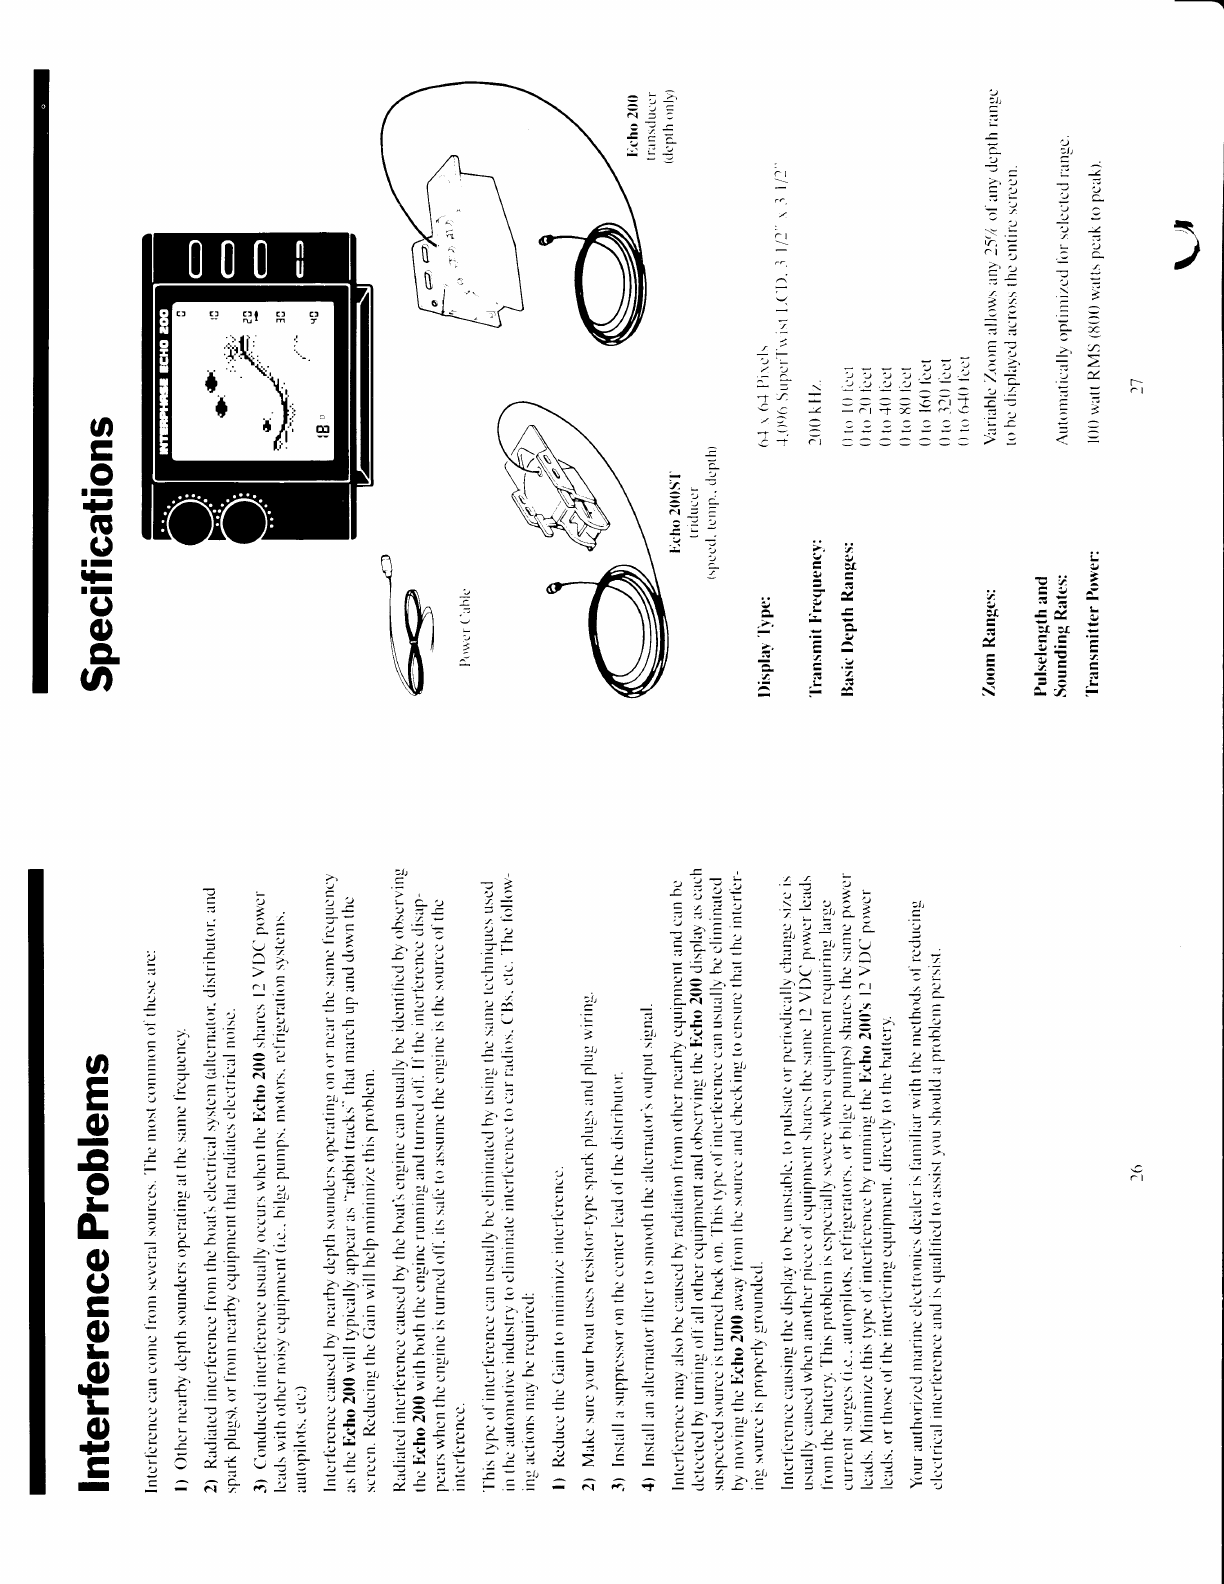 Page 13 of interphase tech fish finder 200 user guide interphase tech 200 fish finder user manual fandeluxe Images